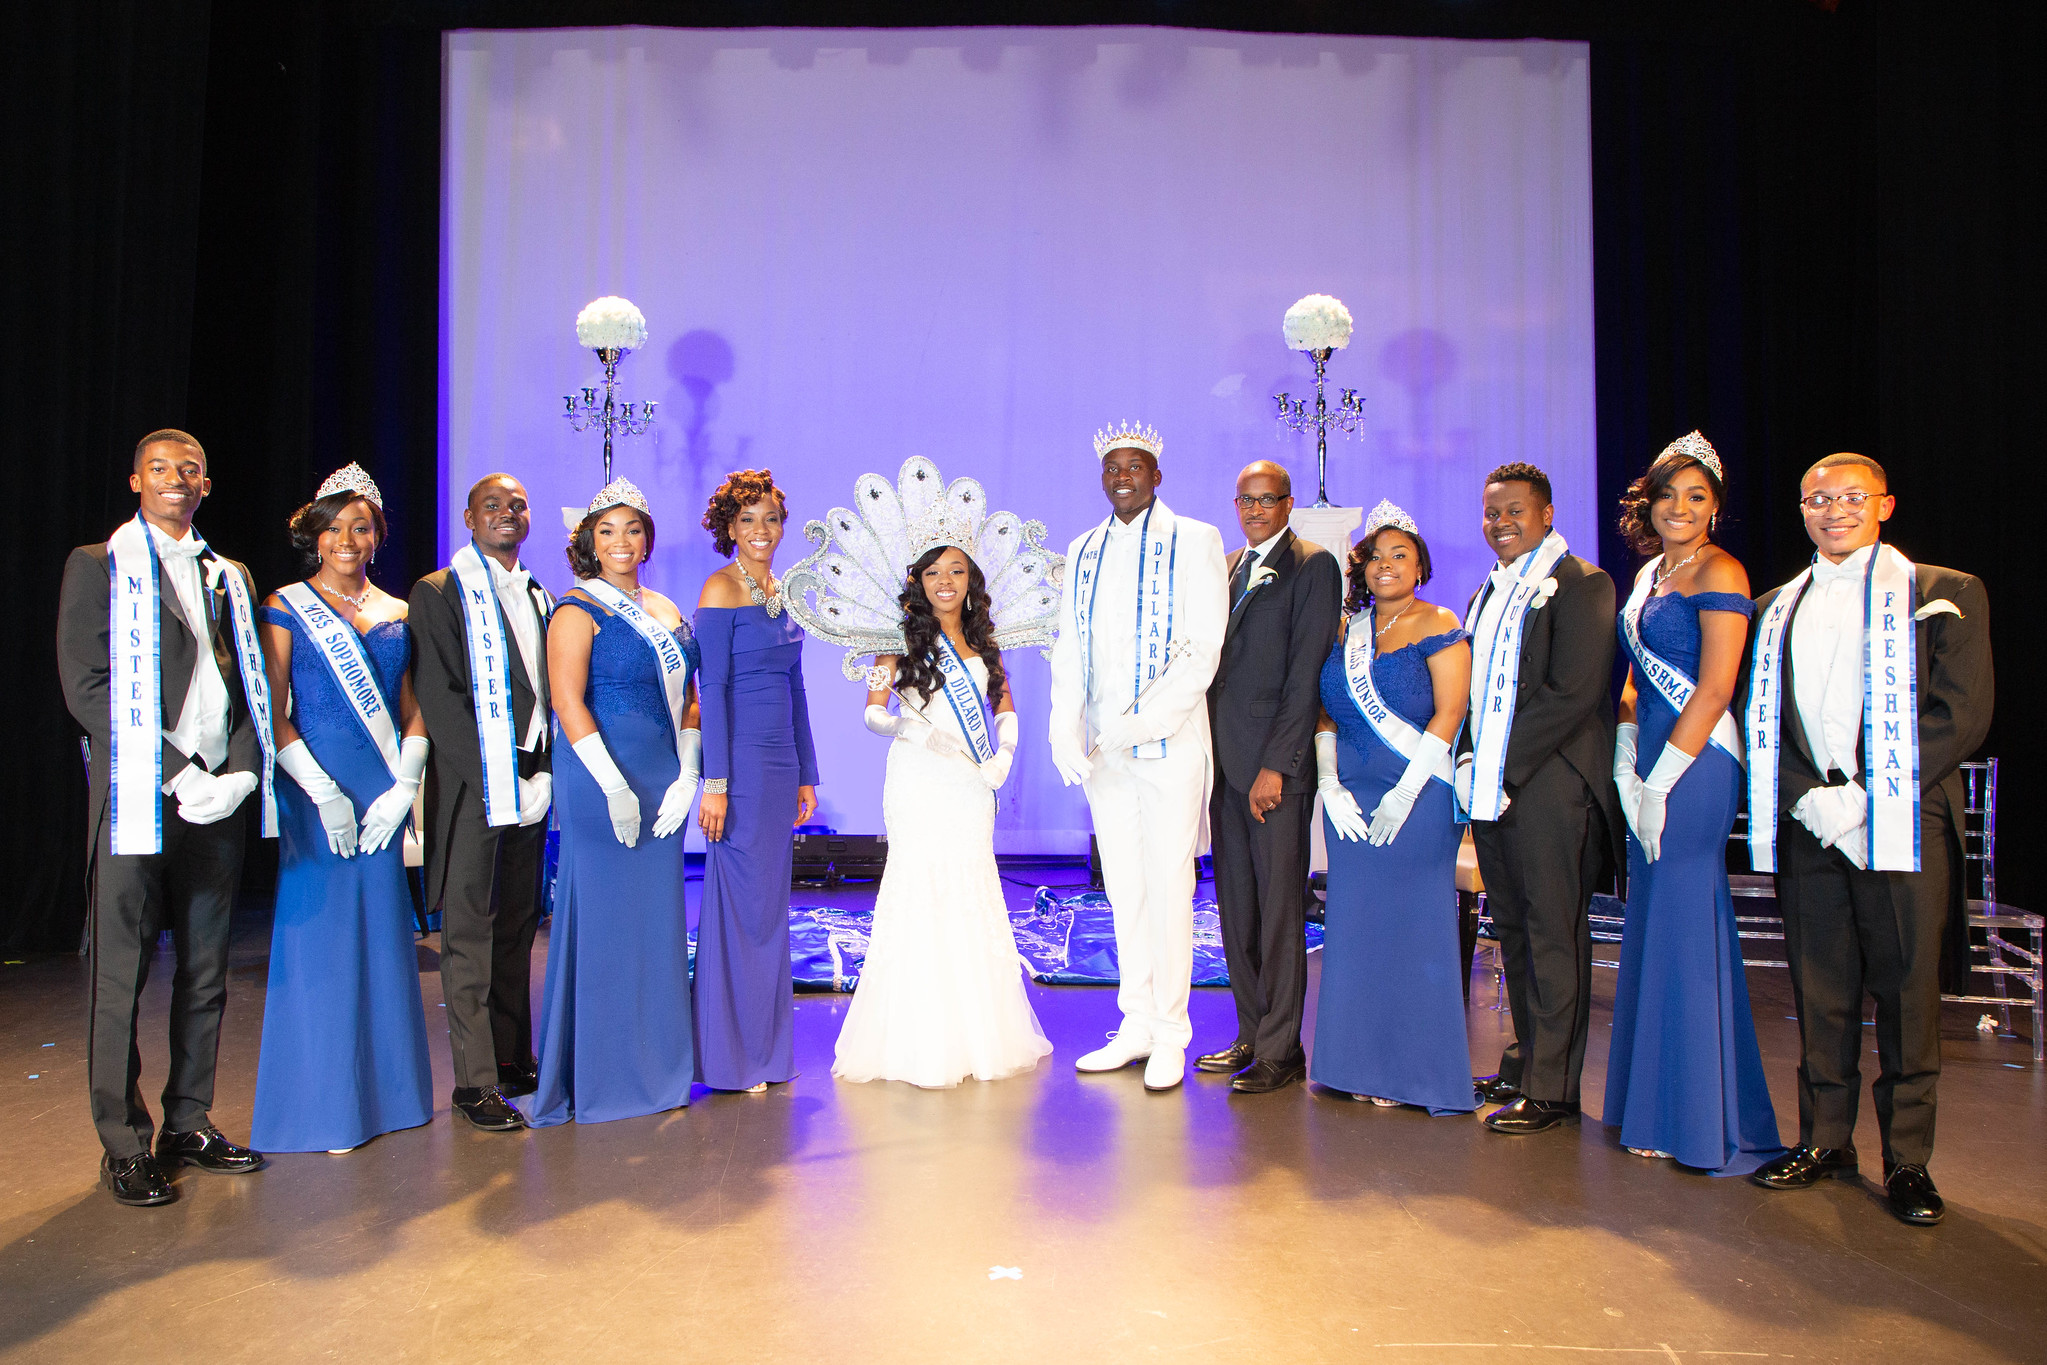 2019 Homecoming Coronation